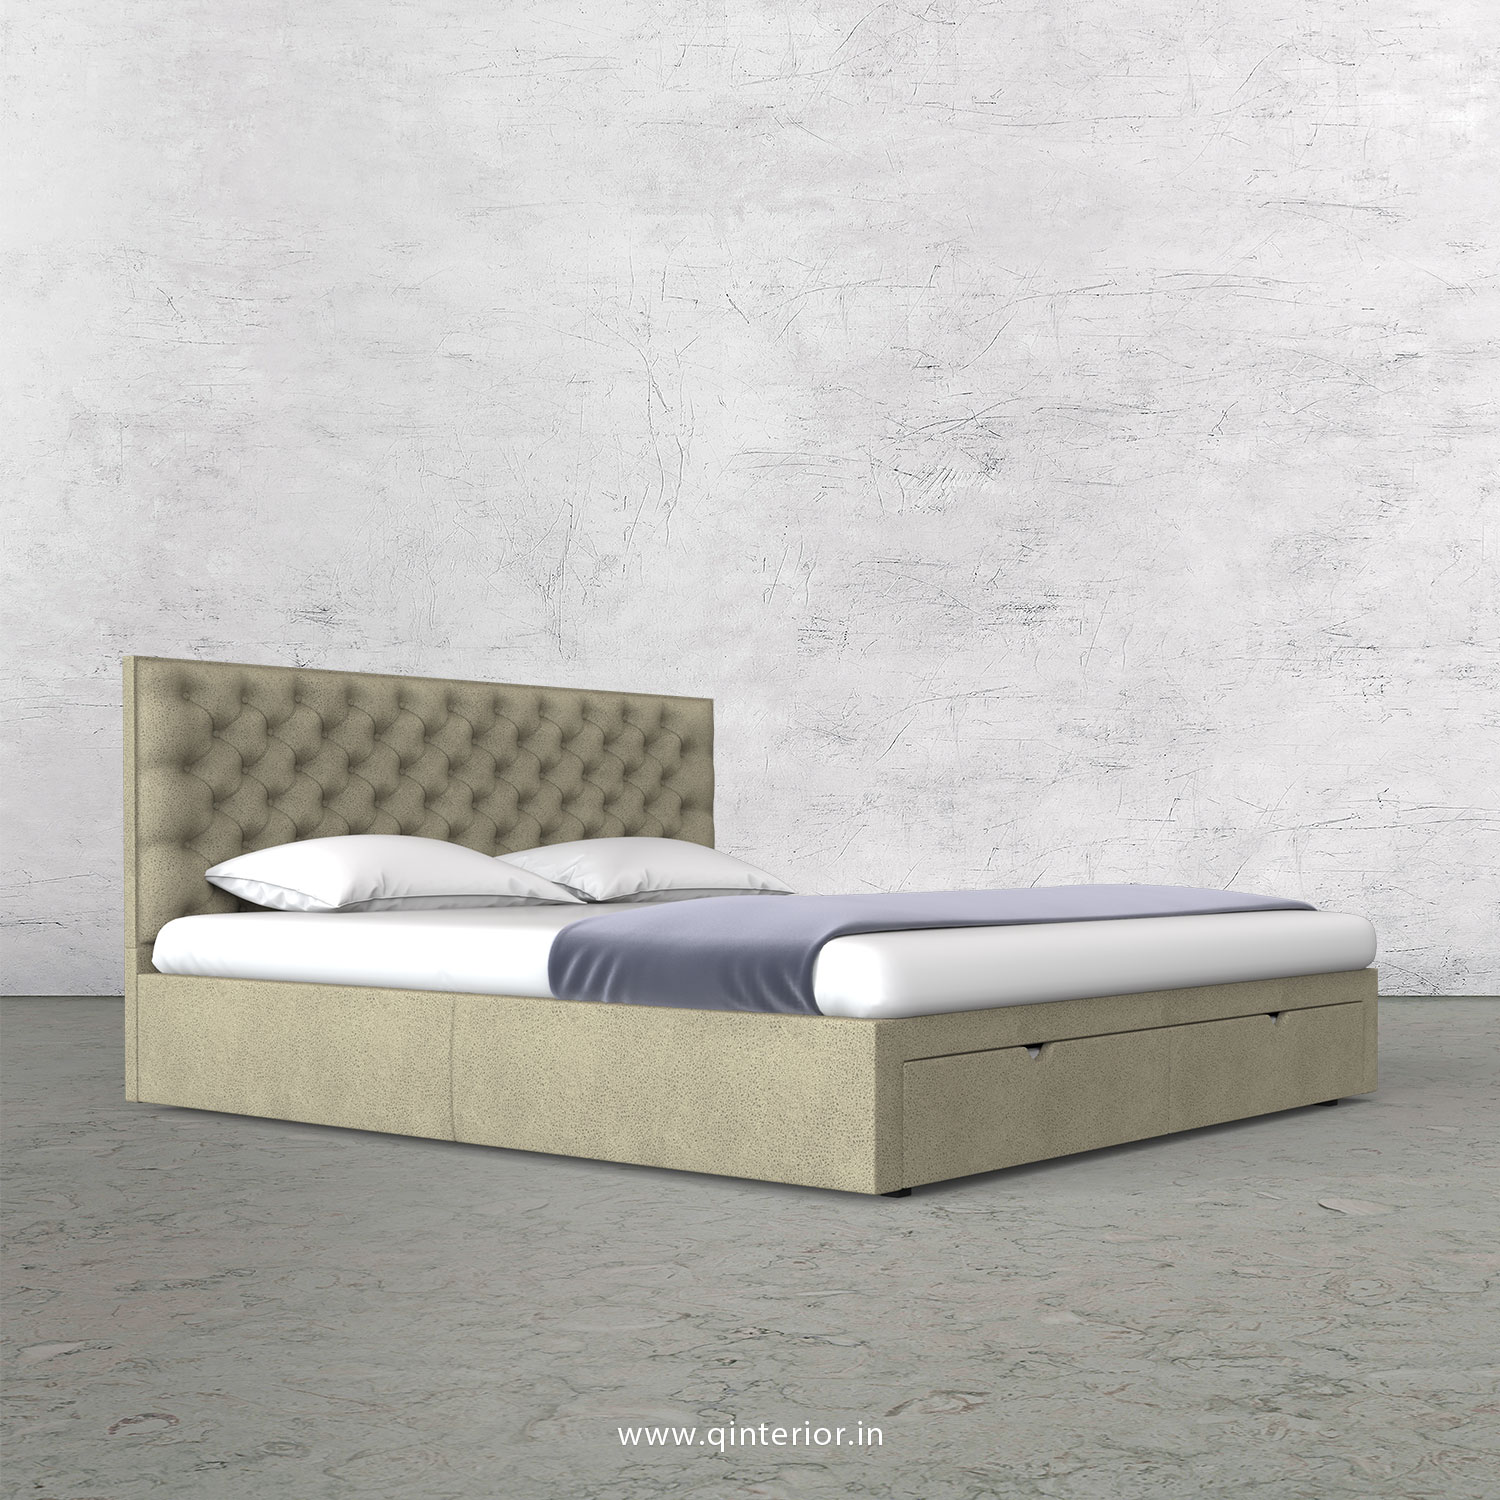 Orion King Size Storage Bed in Fab Leather Fabric - KBD001 FL10